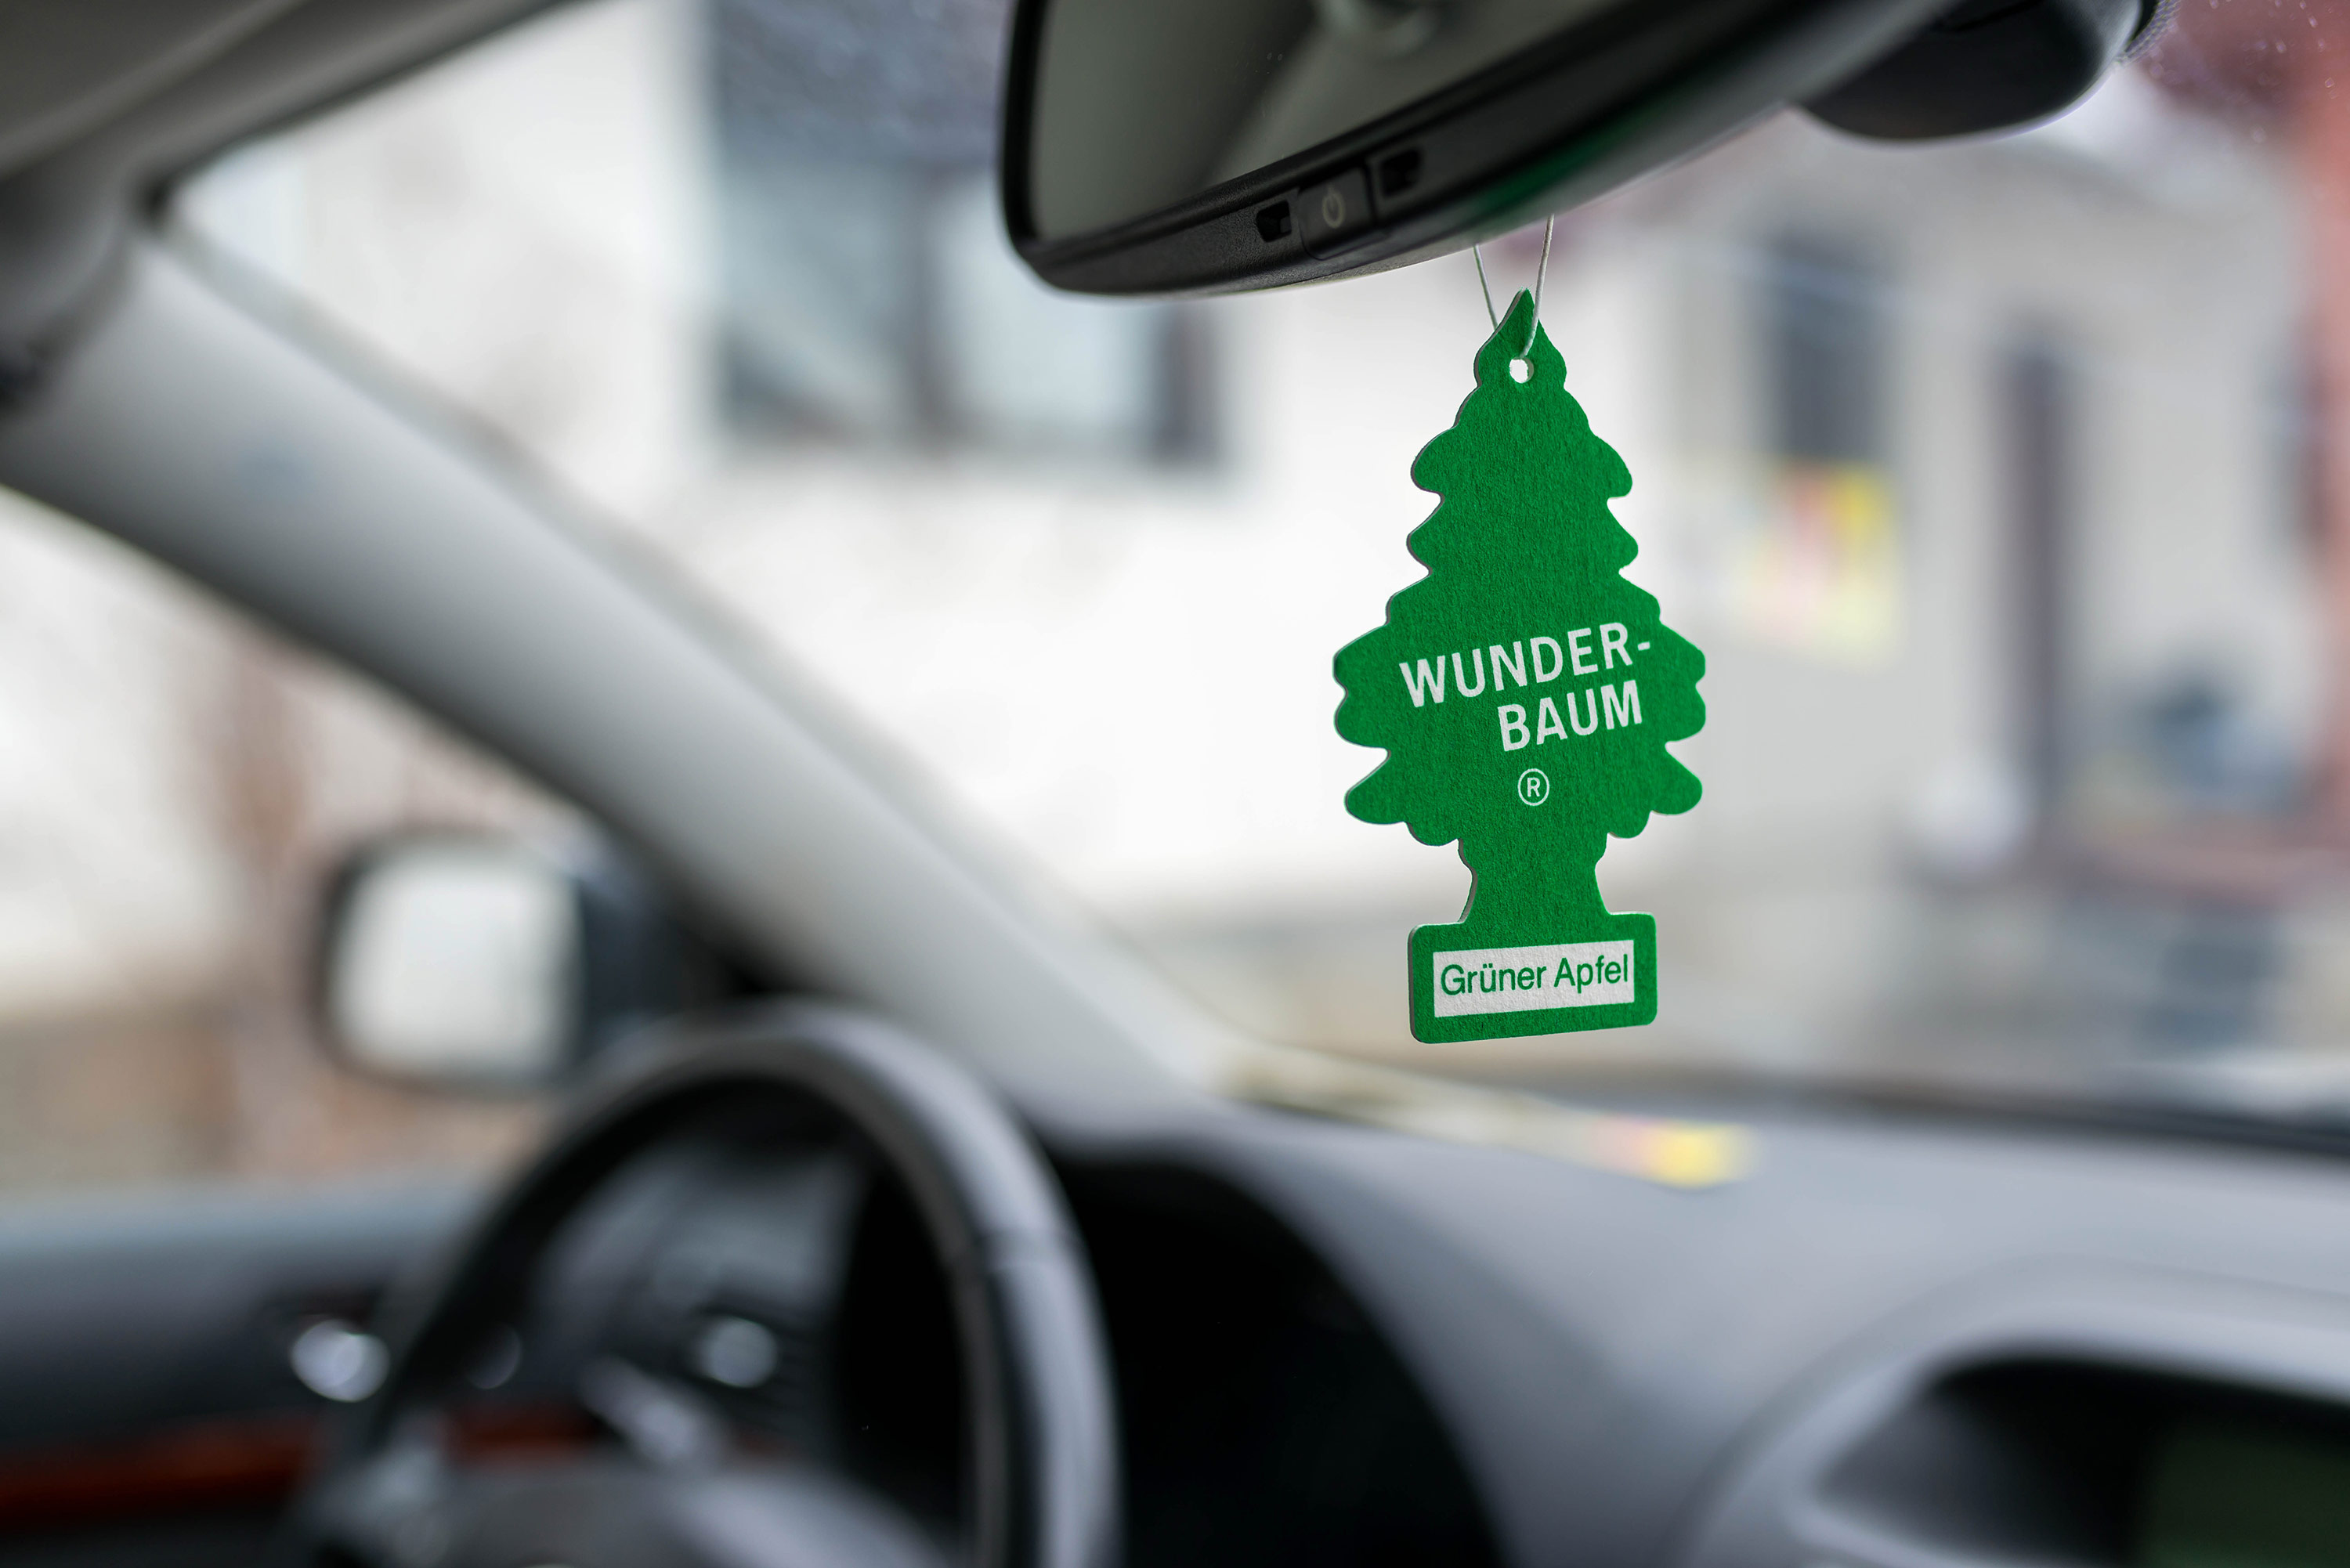 Yes, police can pull you over for hanging an air freshener in your car